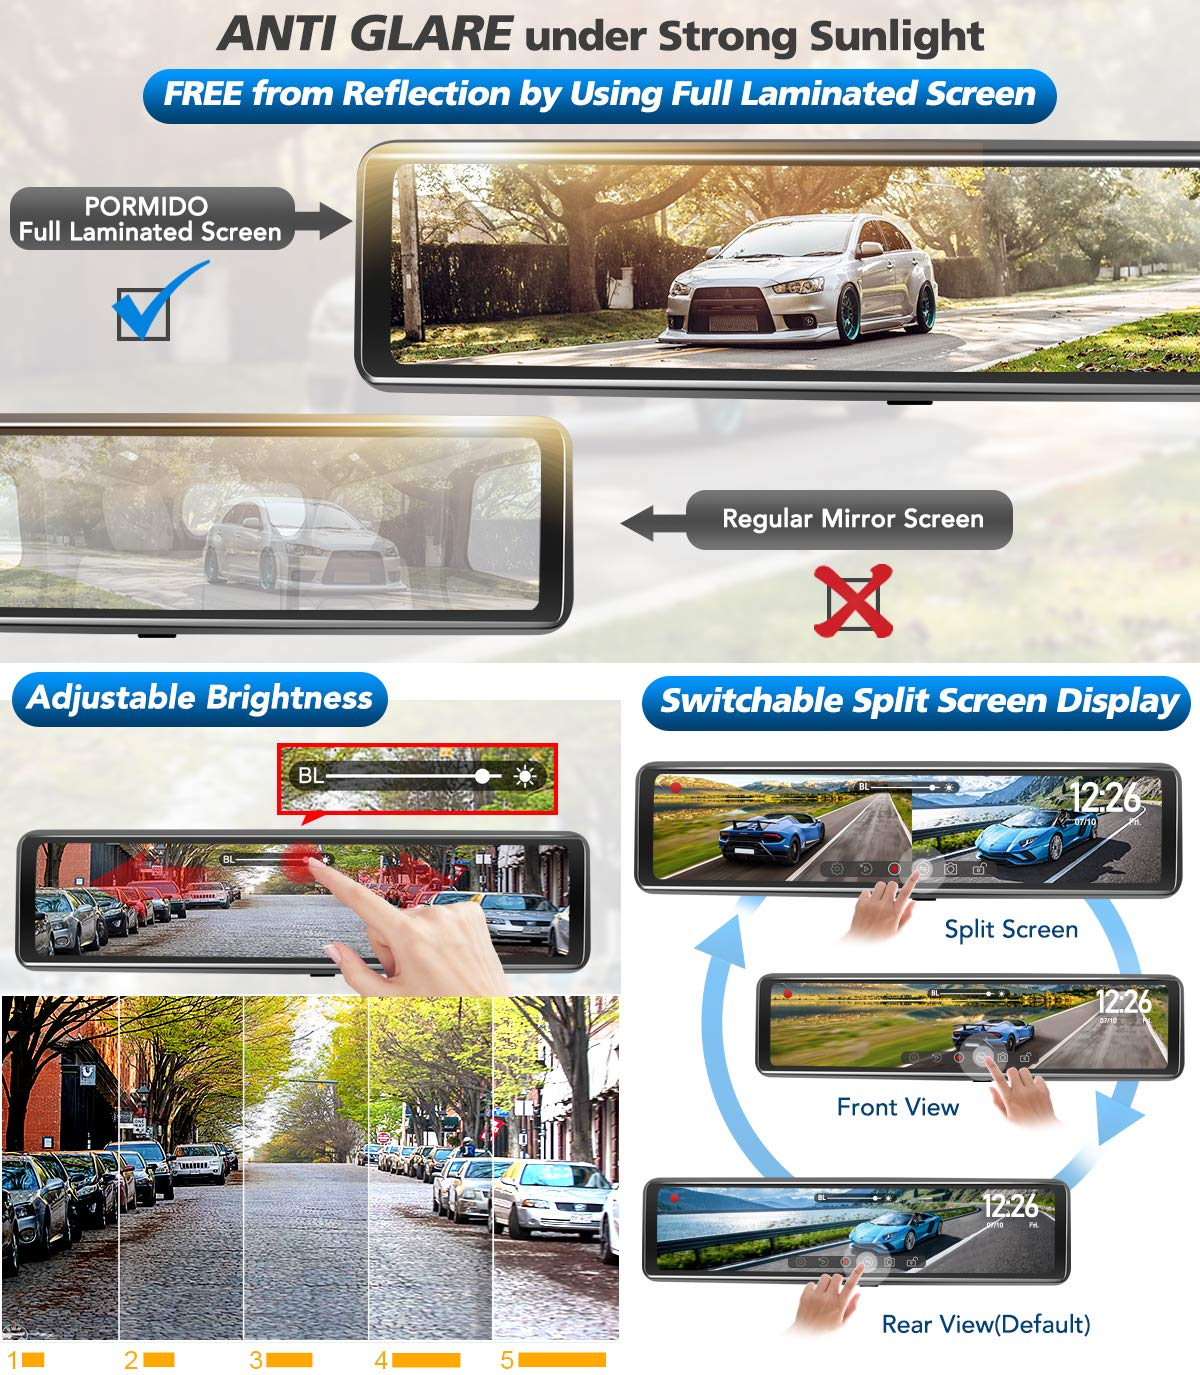 PORMIDO Triple Mirror Dash Cam 12 with Detached Front and in-Car Camera,Waterproof Backup Rear View Dashcam Anti Glare 1920P IPS Touch Screen,Starvis Night Vision Sony Sensor,GPS,Parking Assistance